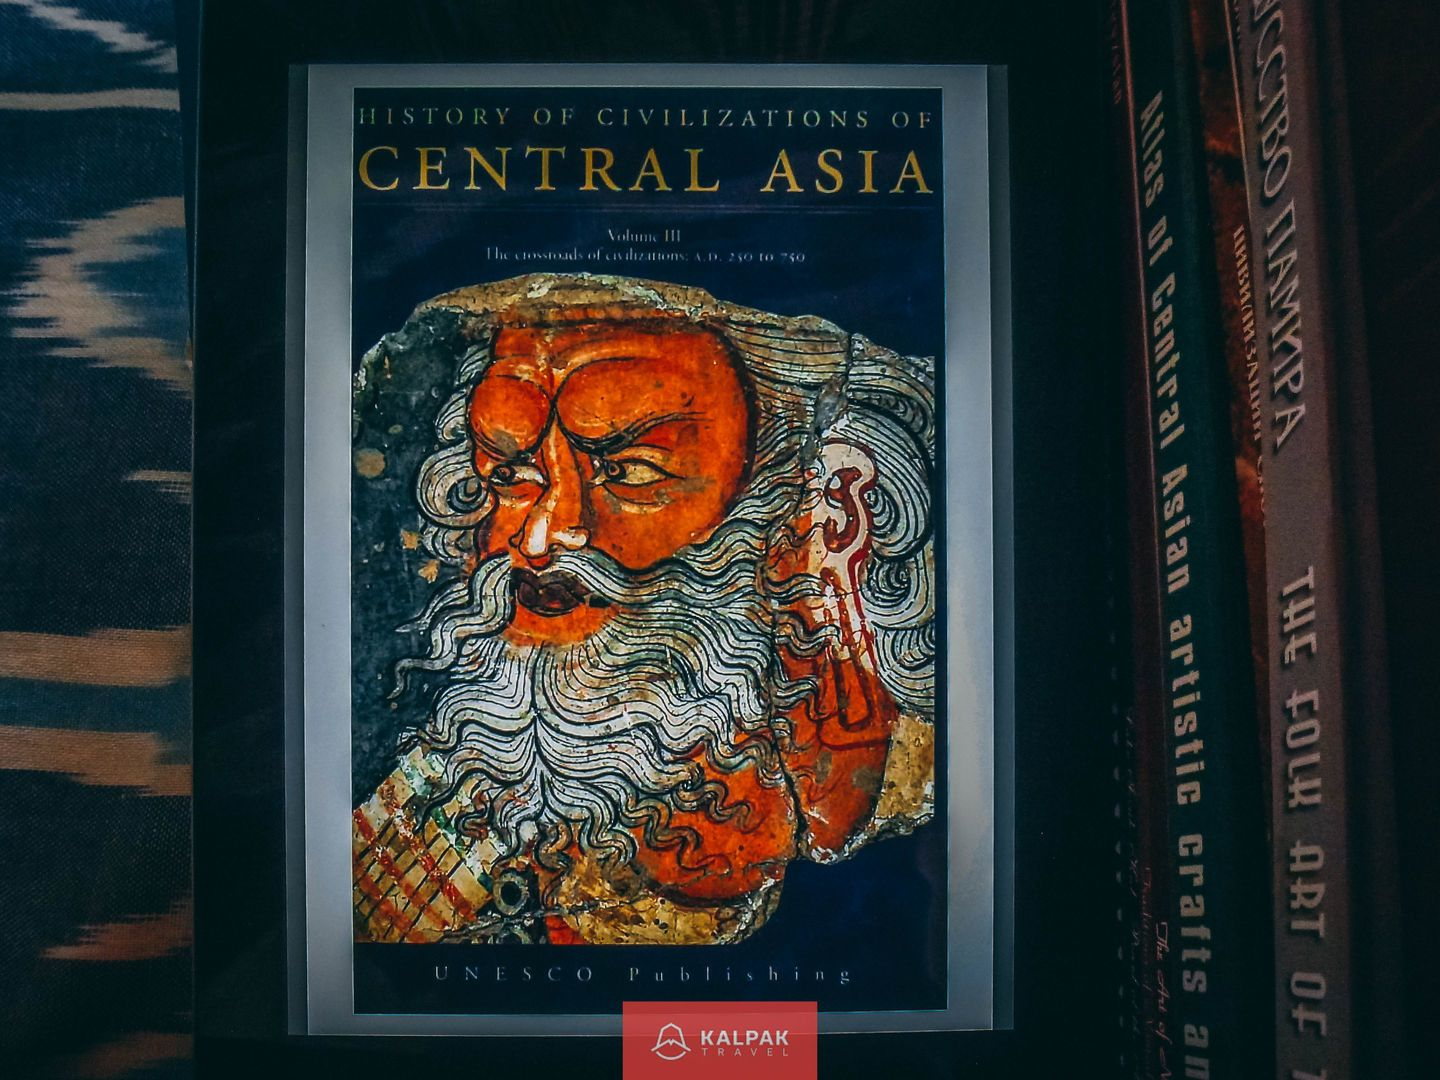 Central Asia political history books